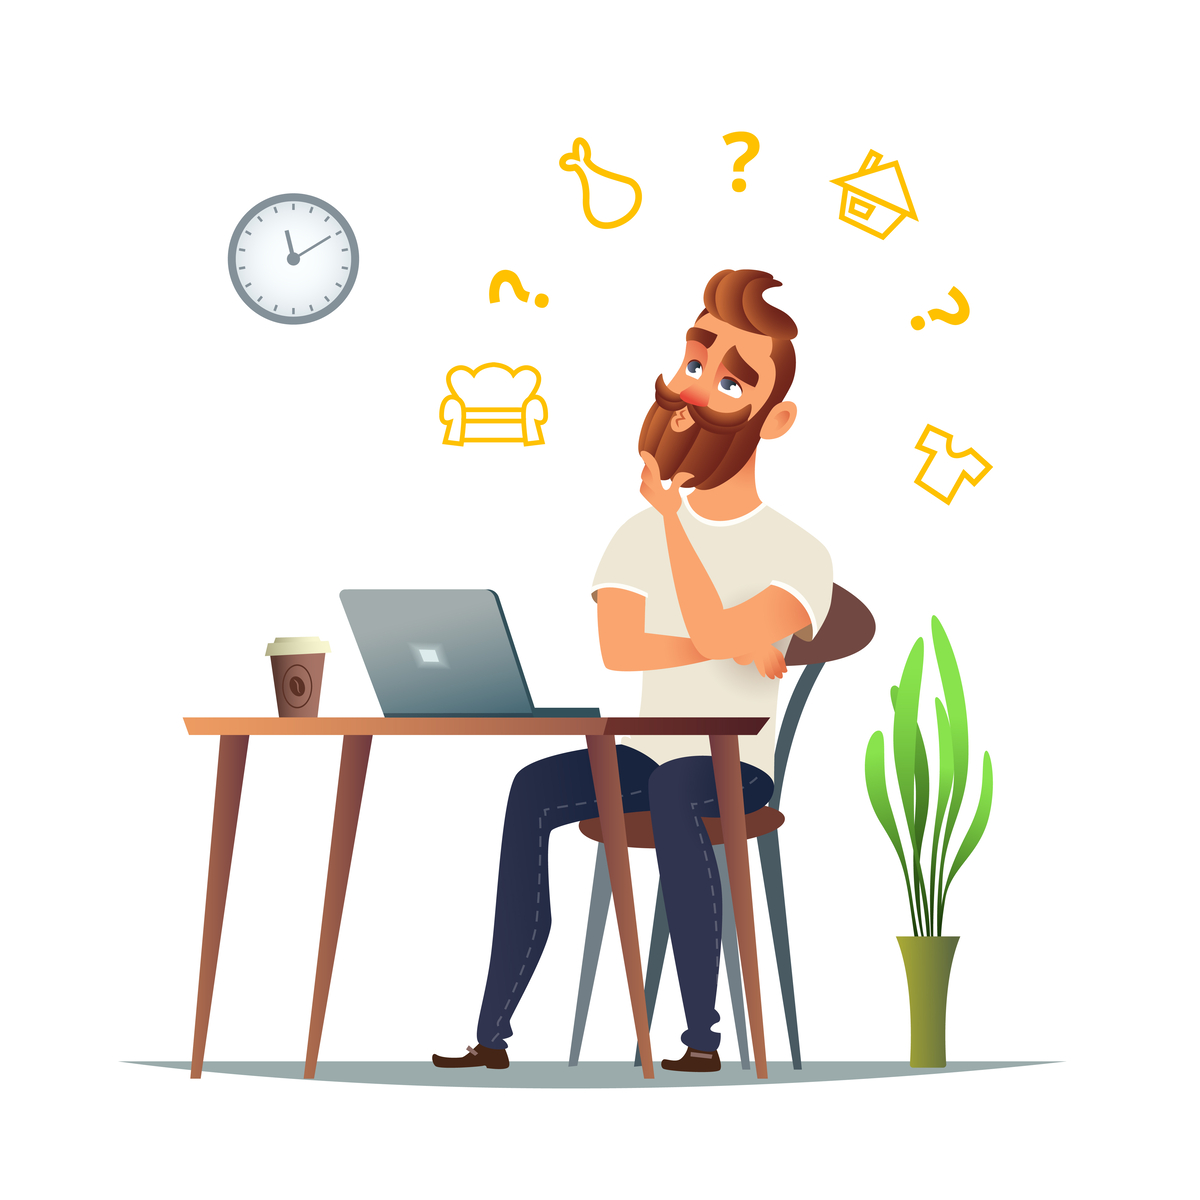 Illuustration of a man sitting in front of a laptop and wondering.